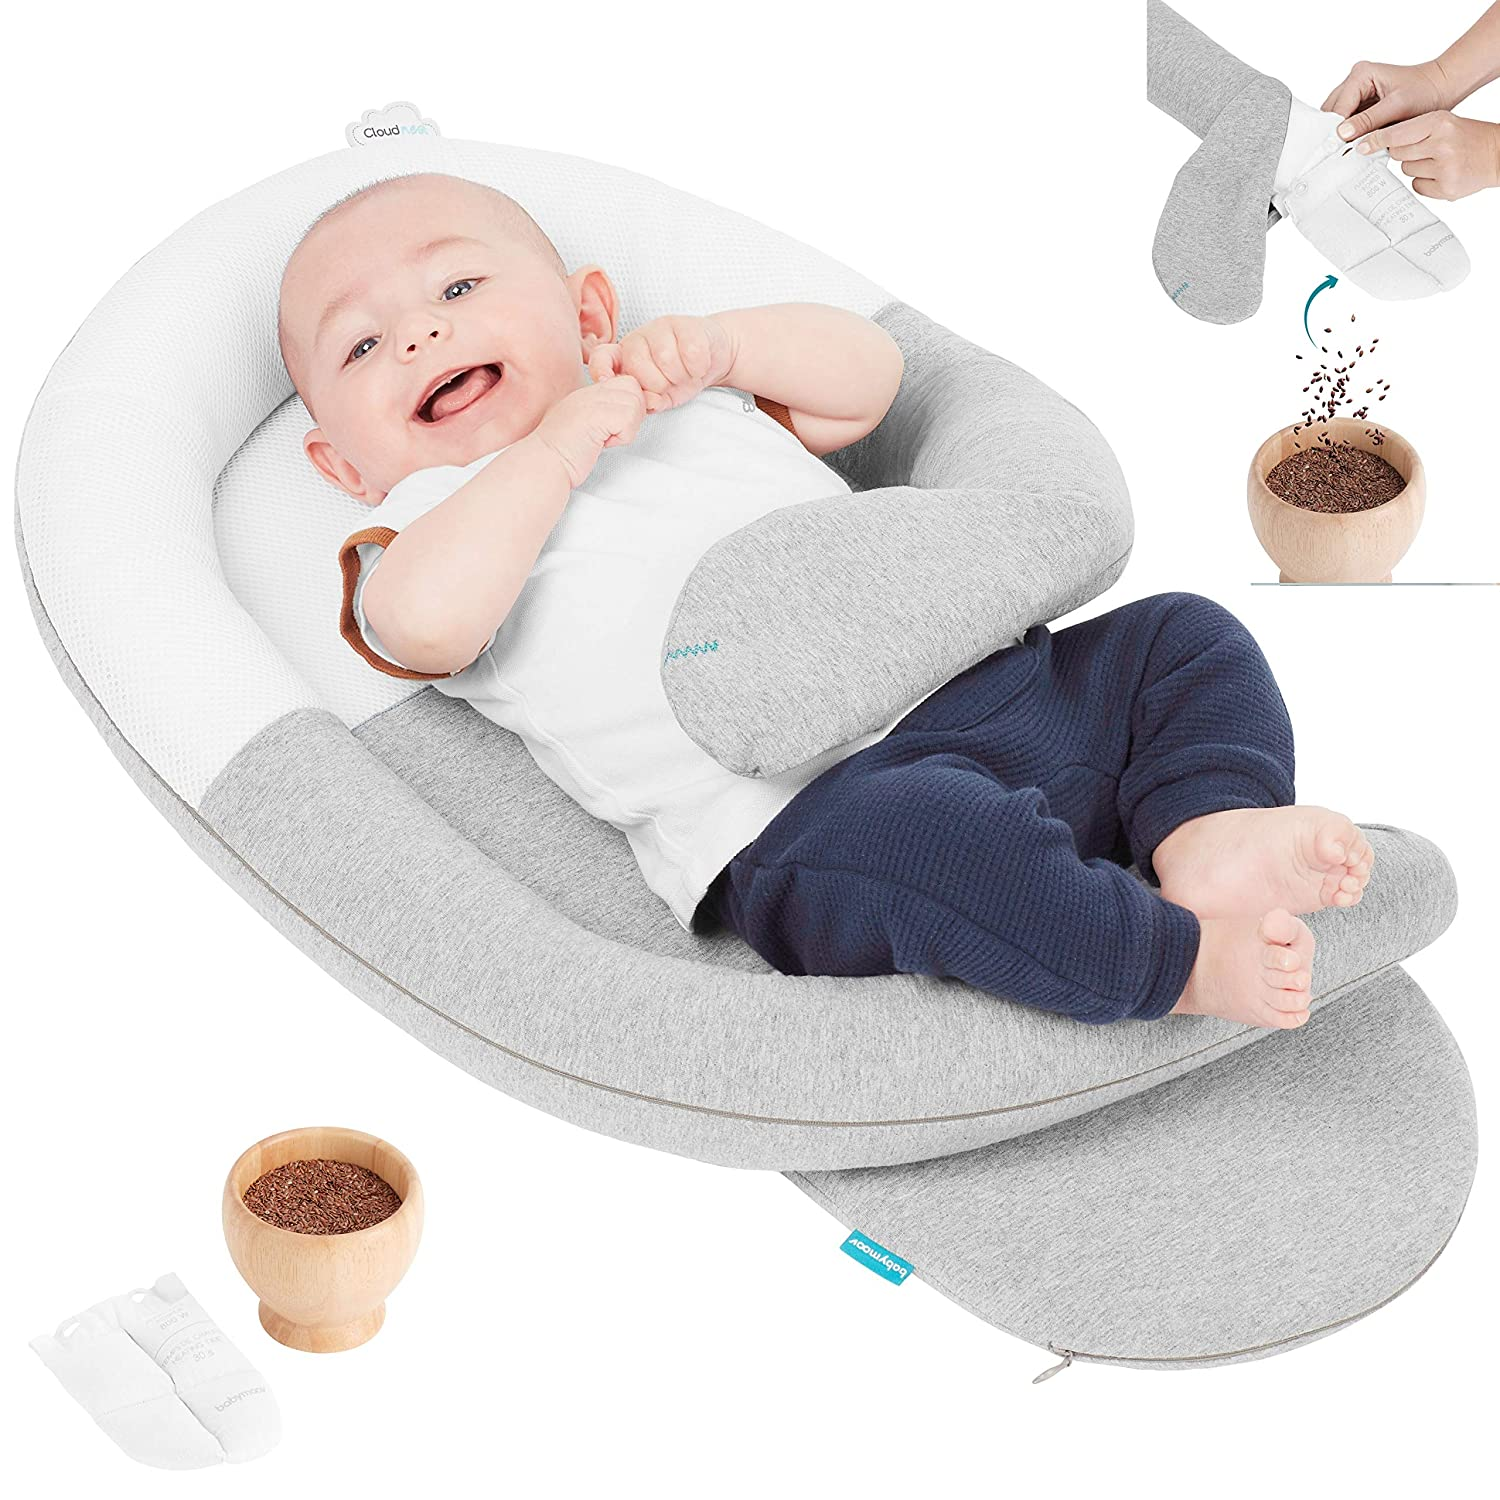 Babymoov CloudNest Organic Soothing Lounger - Original Colic Reducing Nest with a Warm Womb-Like Feel (Created by a Midwife)